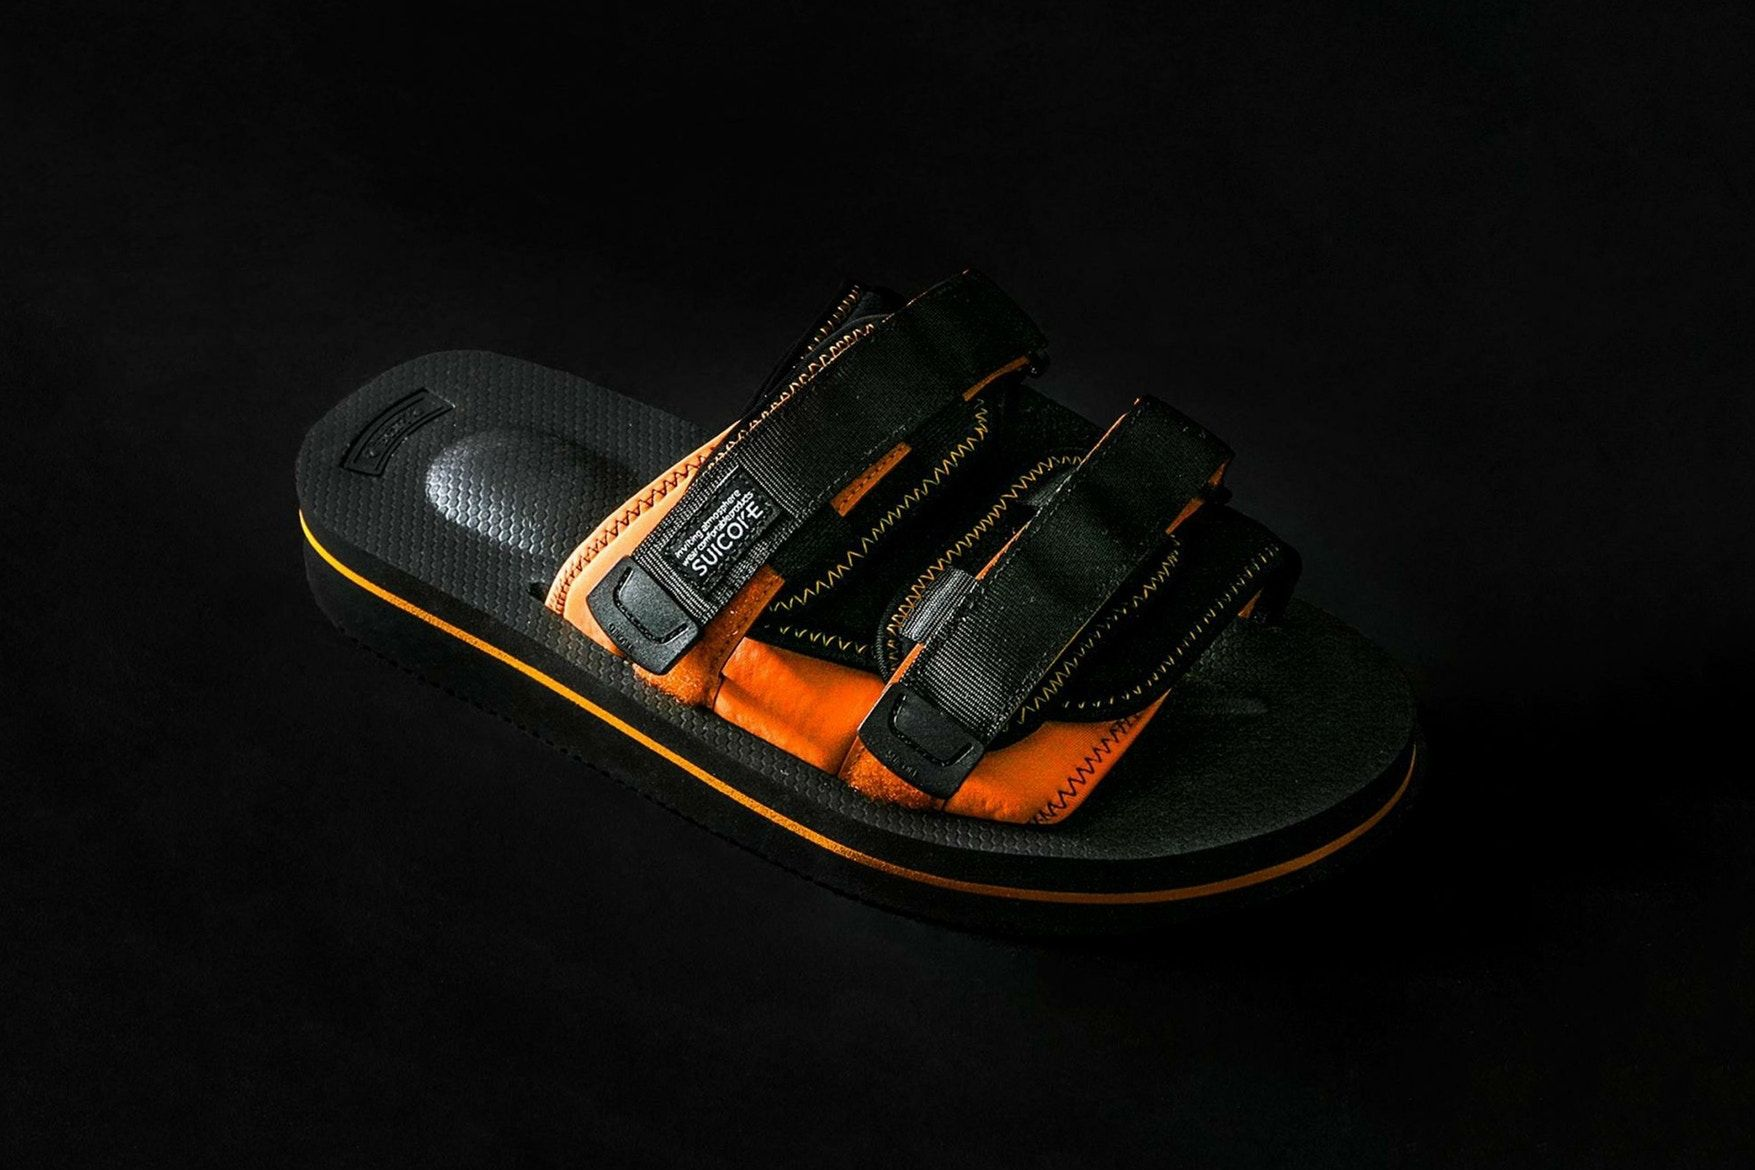 45adf133e1 monkey time SUICOKE MOTO V collaboration slides sandals may 2018 release  date info drop shoes footwear black orange silver olive